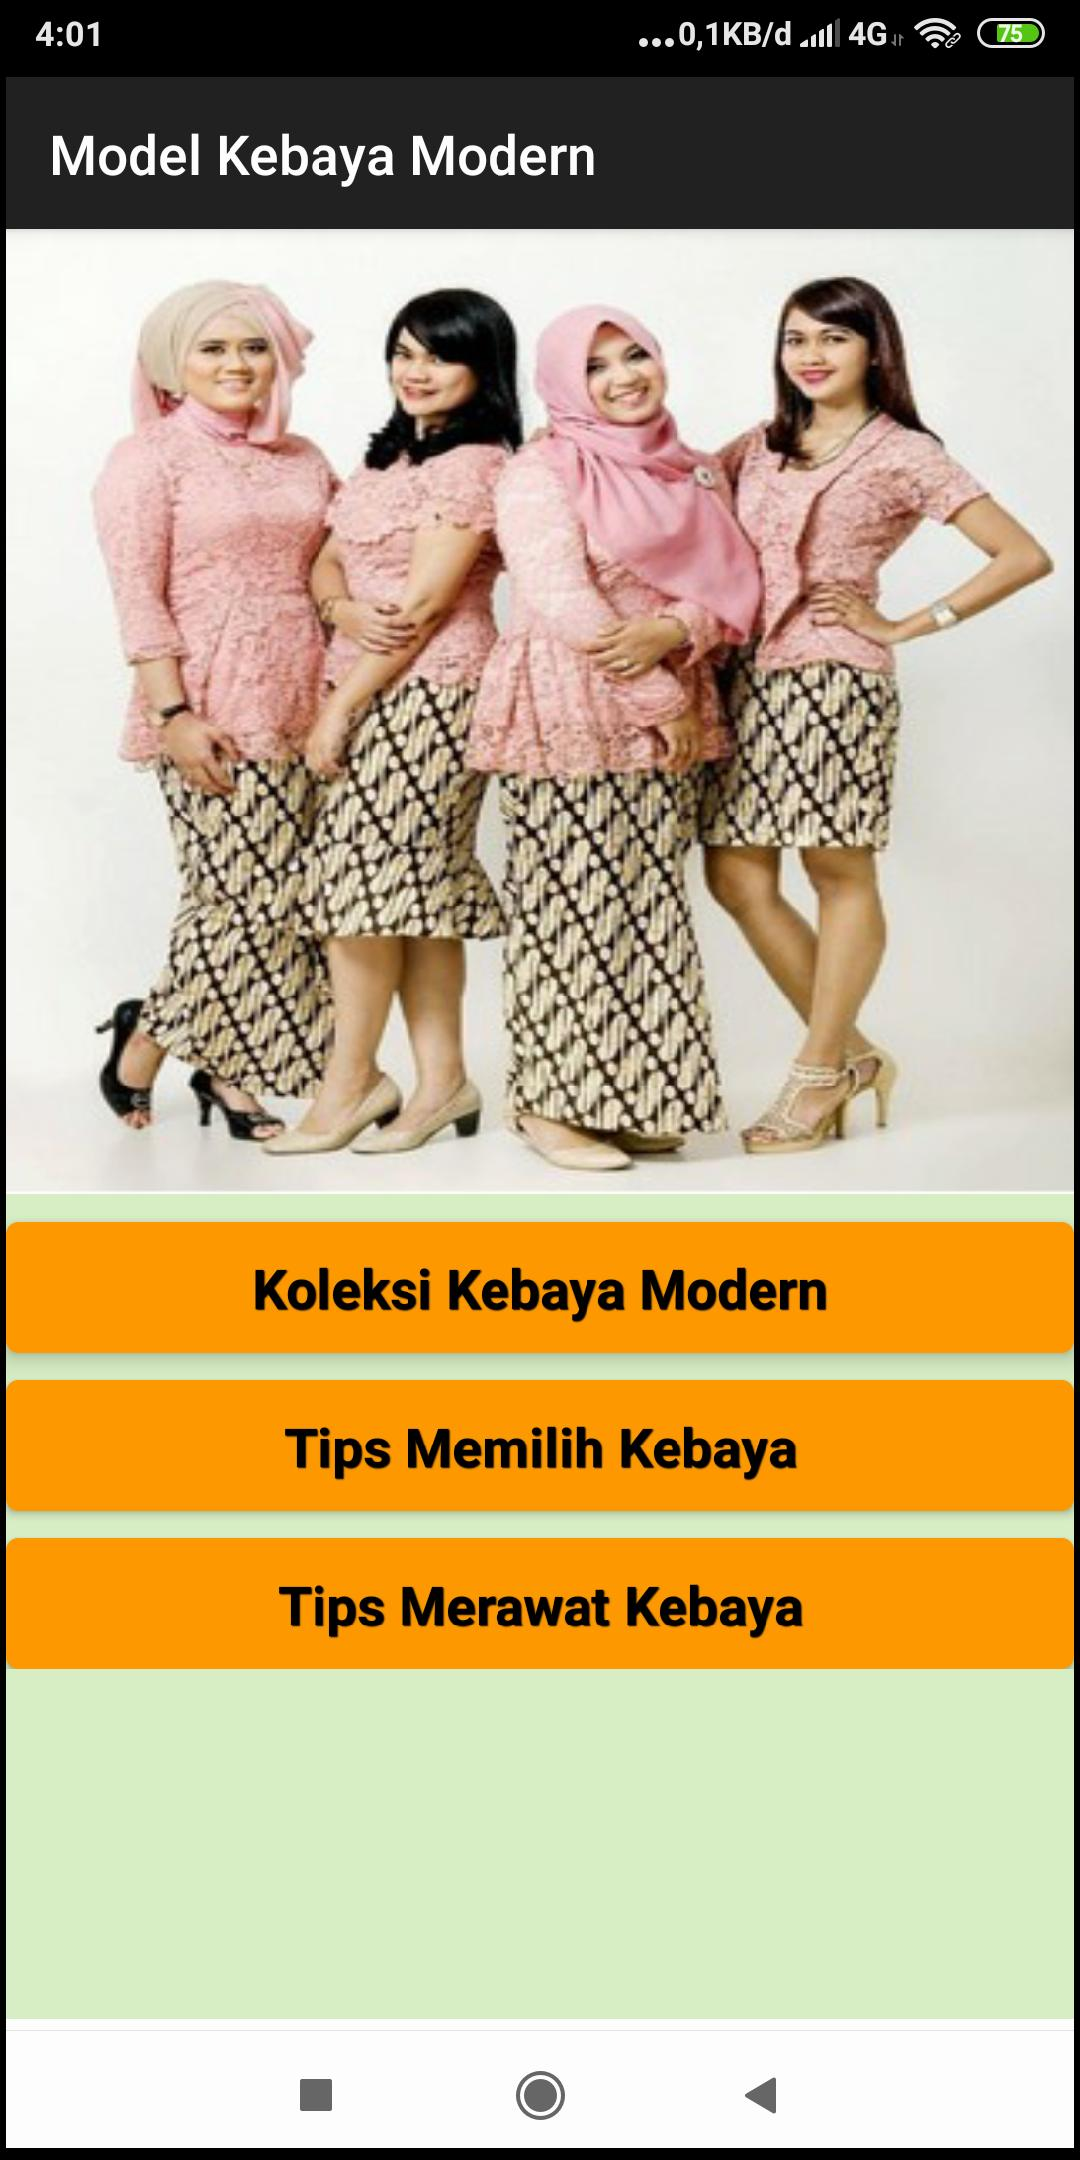 Kumpulan Model Kebaya Modern for Android - APK Download